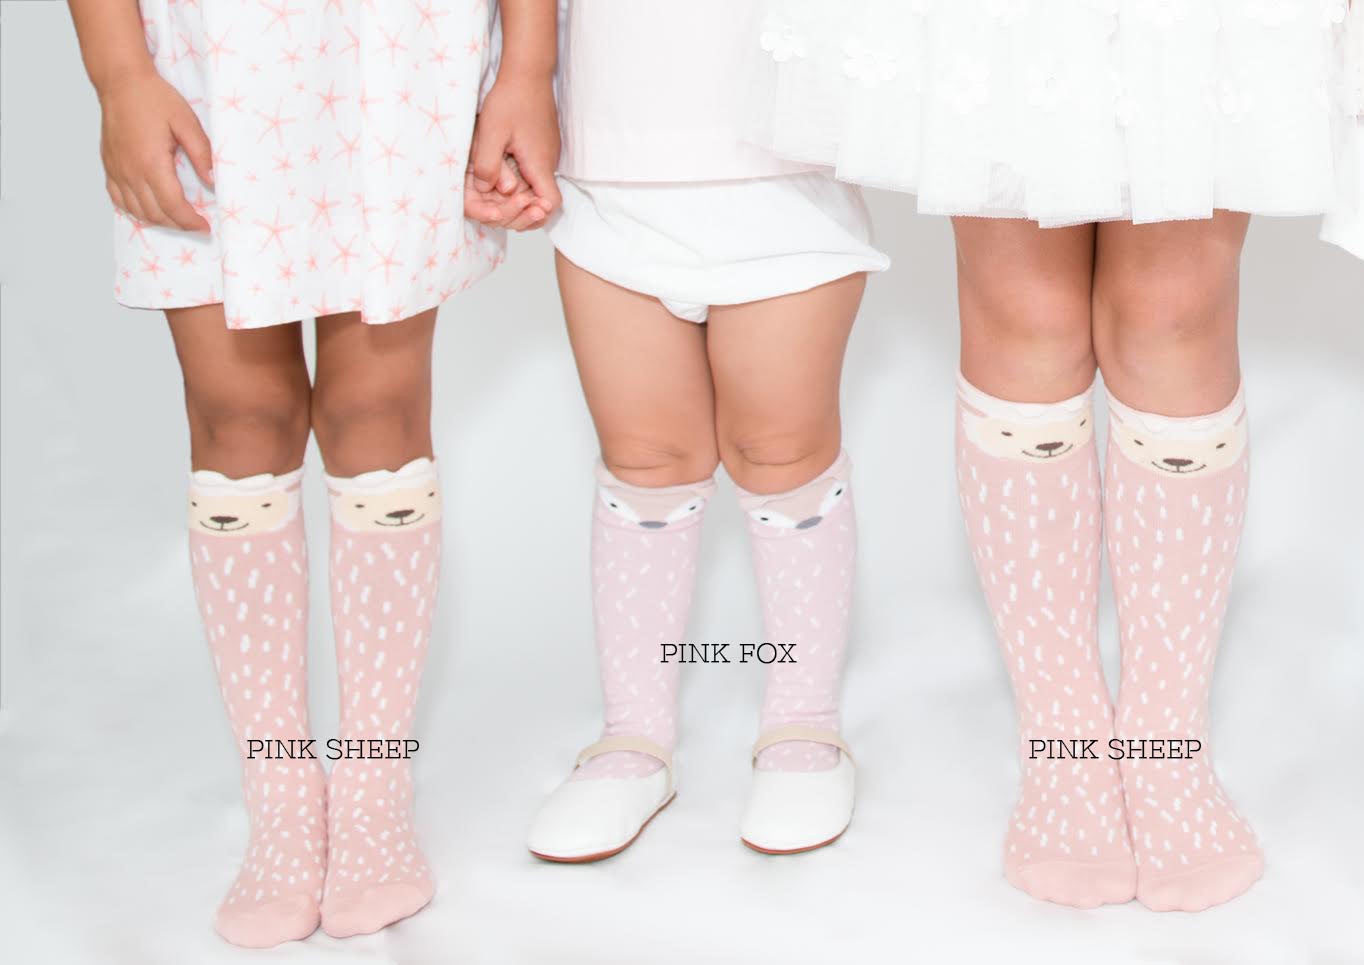 Little Pink Fox - high knee socks: 0-1Y, 1-3Y, 3-5Y